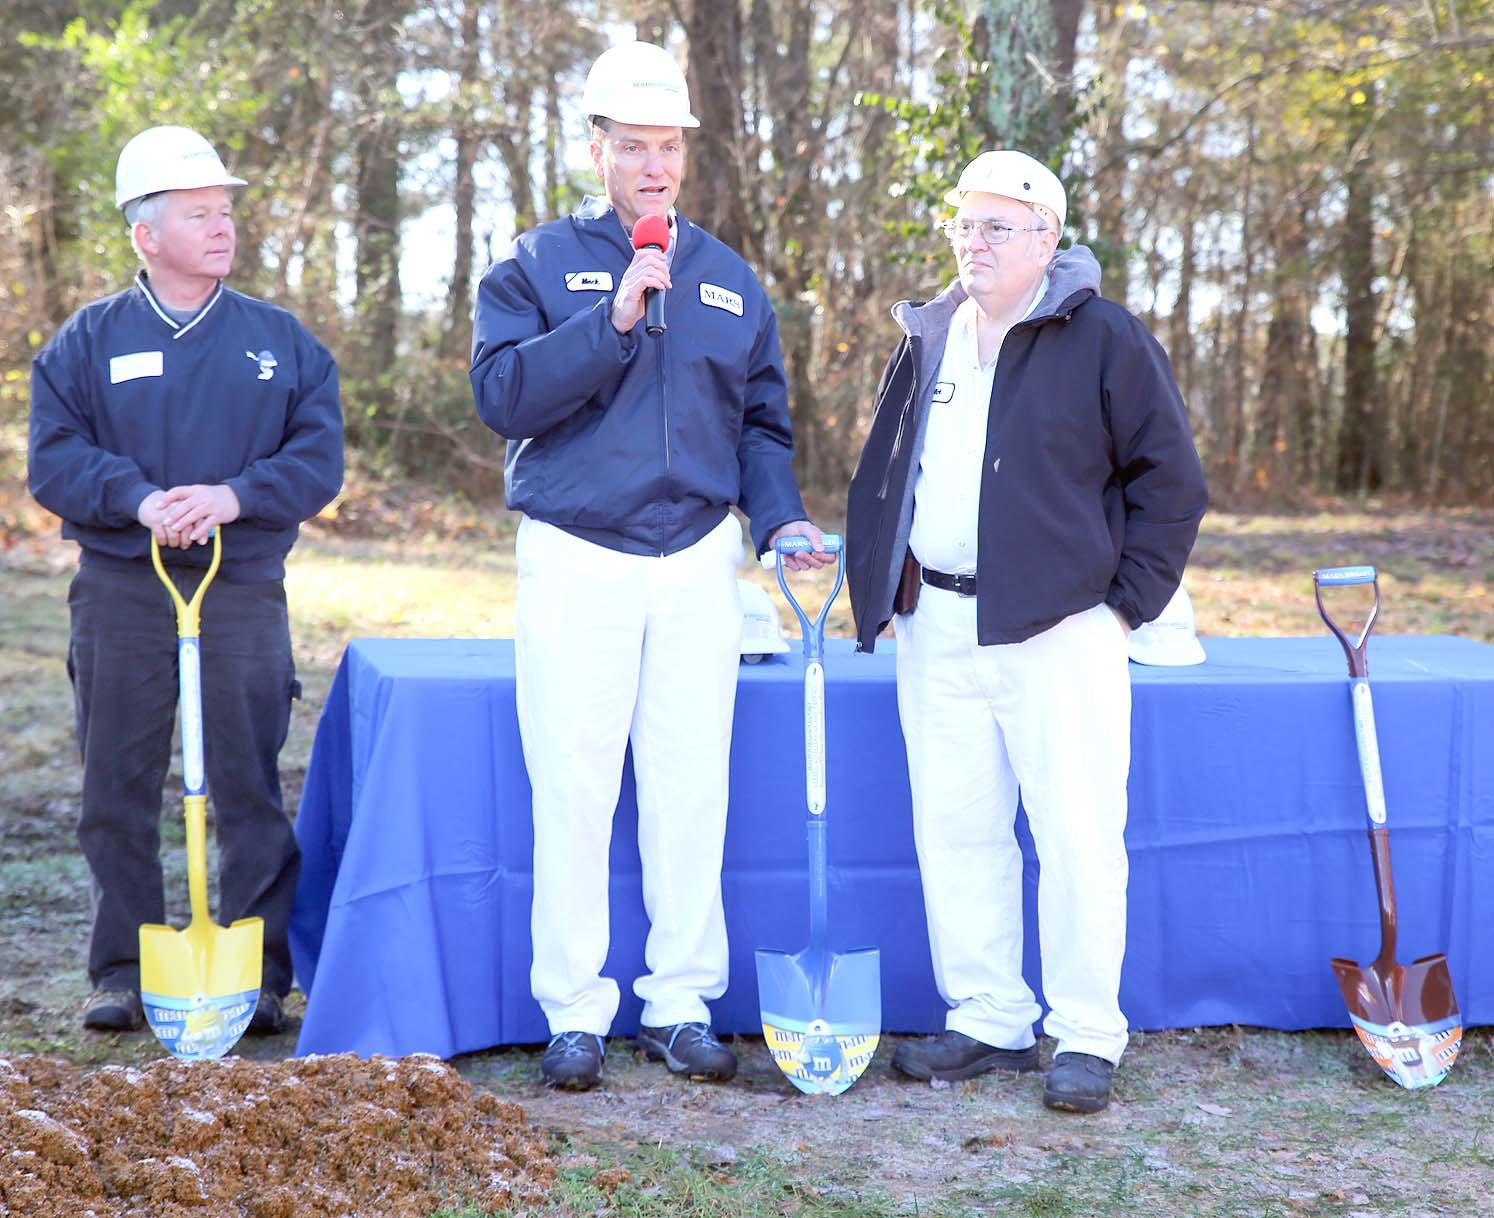 SITE DIRECTOR MACK PHILLIPS, center, asks 40-year Mars employee Rick Joines, right, to fill in for one of the dignitaries not in attendance, and take part in the official groundbreaking ceremony. Also pictured is former site director Todd Farell, left.